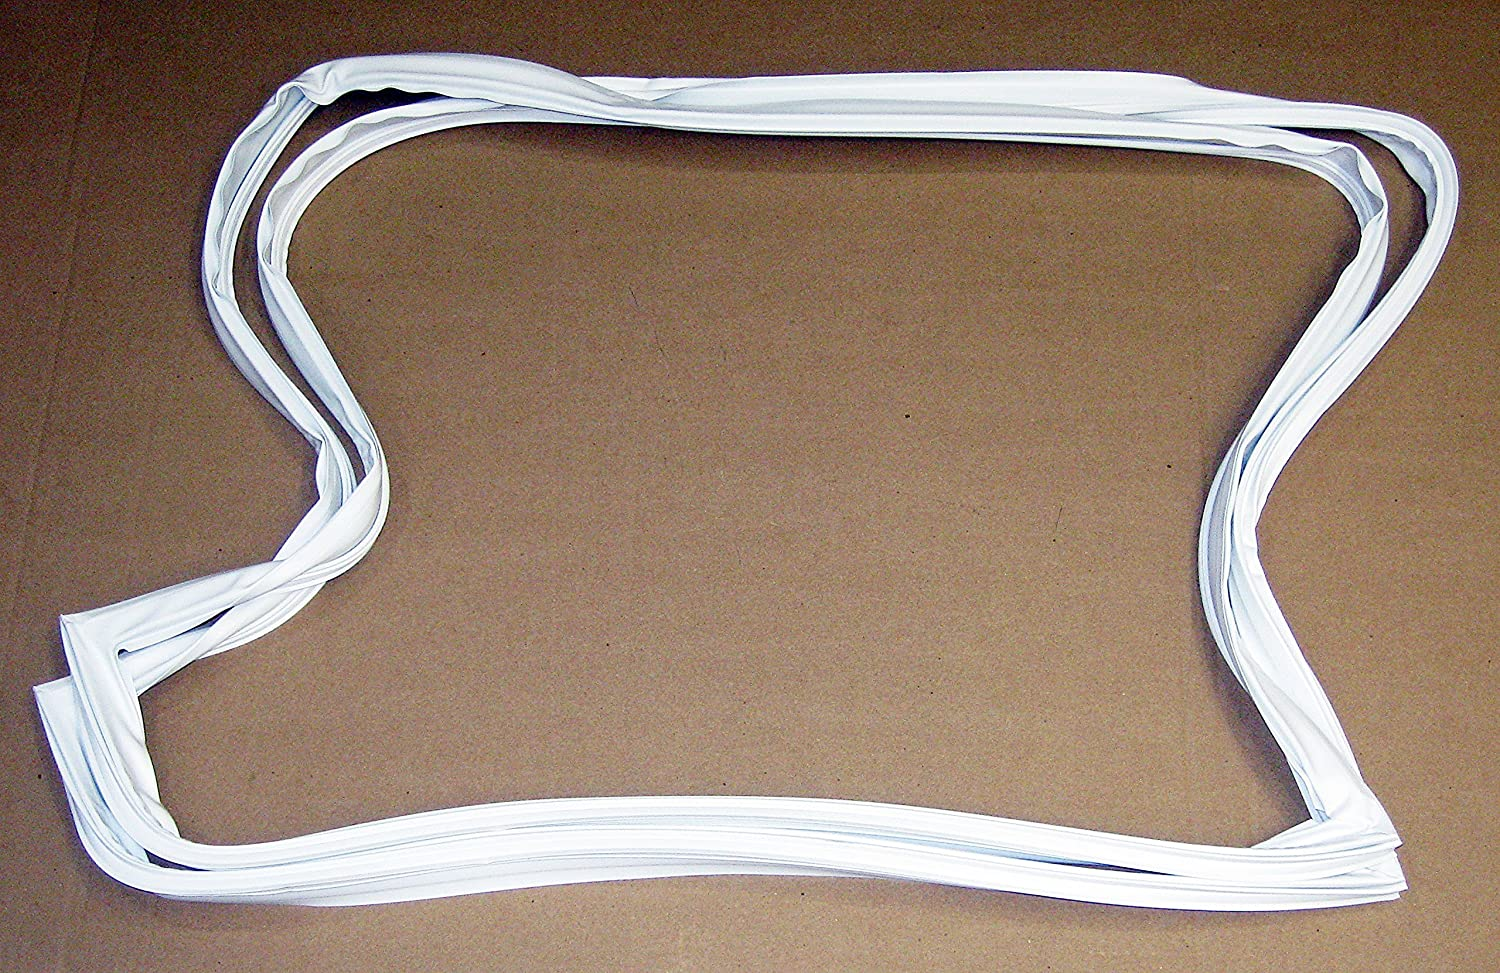 Frigidaire 5304507199 Freezer Door Gasket Original Equipment (OEM) Part, White